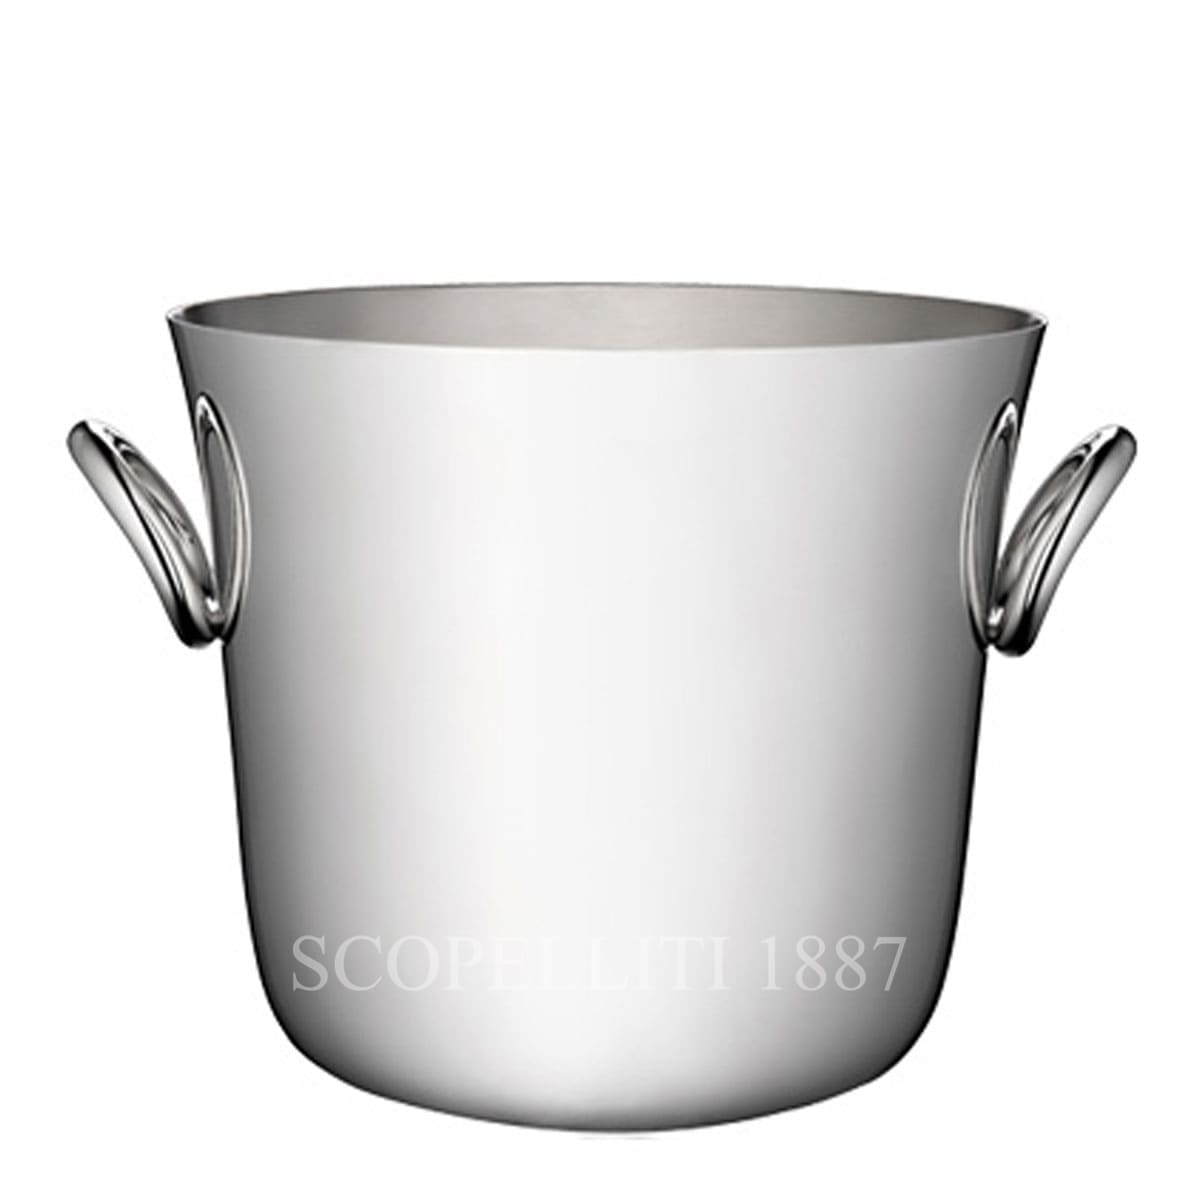 Christofle Vertigo Silver Plated Ice Bucket